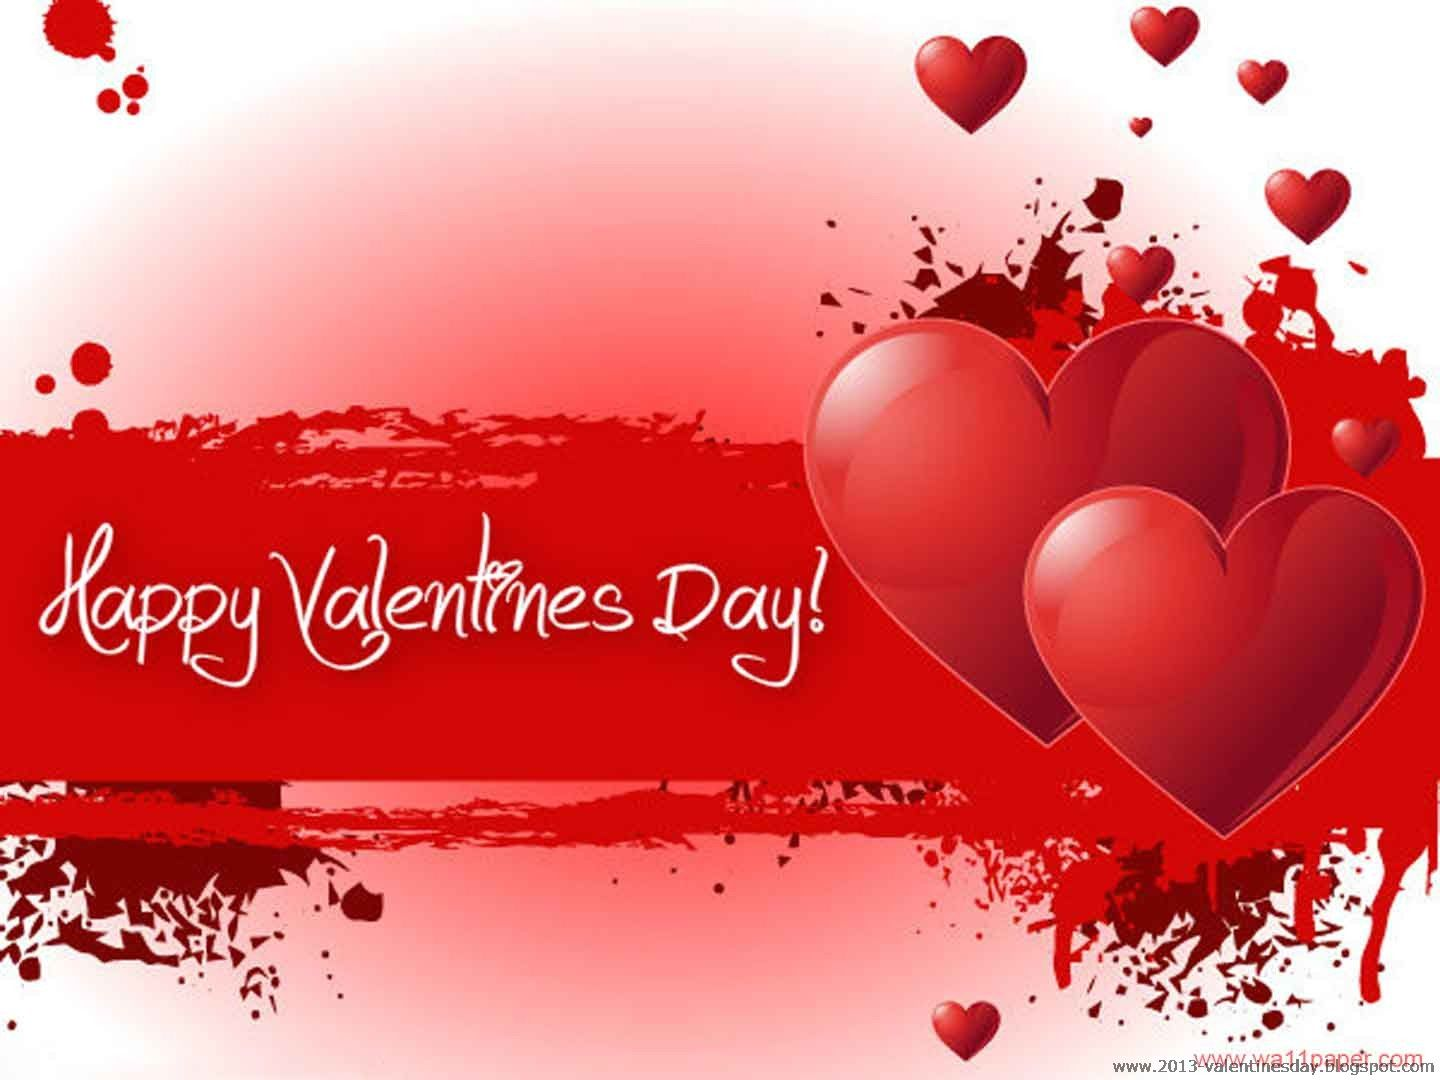 Recipes for your valentine happy valentines day greetings 2017 here you can find the suitable happy valentines day greetings to greet your loved one this upcoming valentines day kristyandbryce Image collections